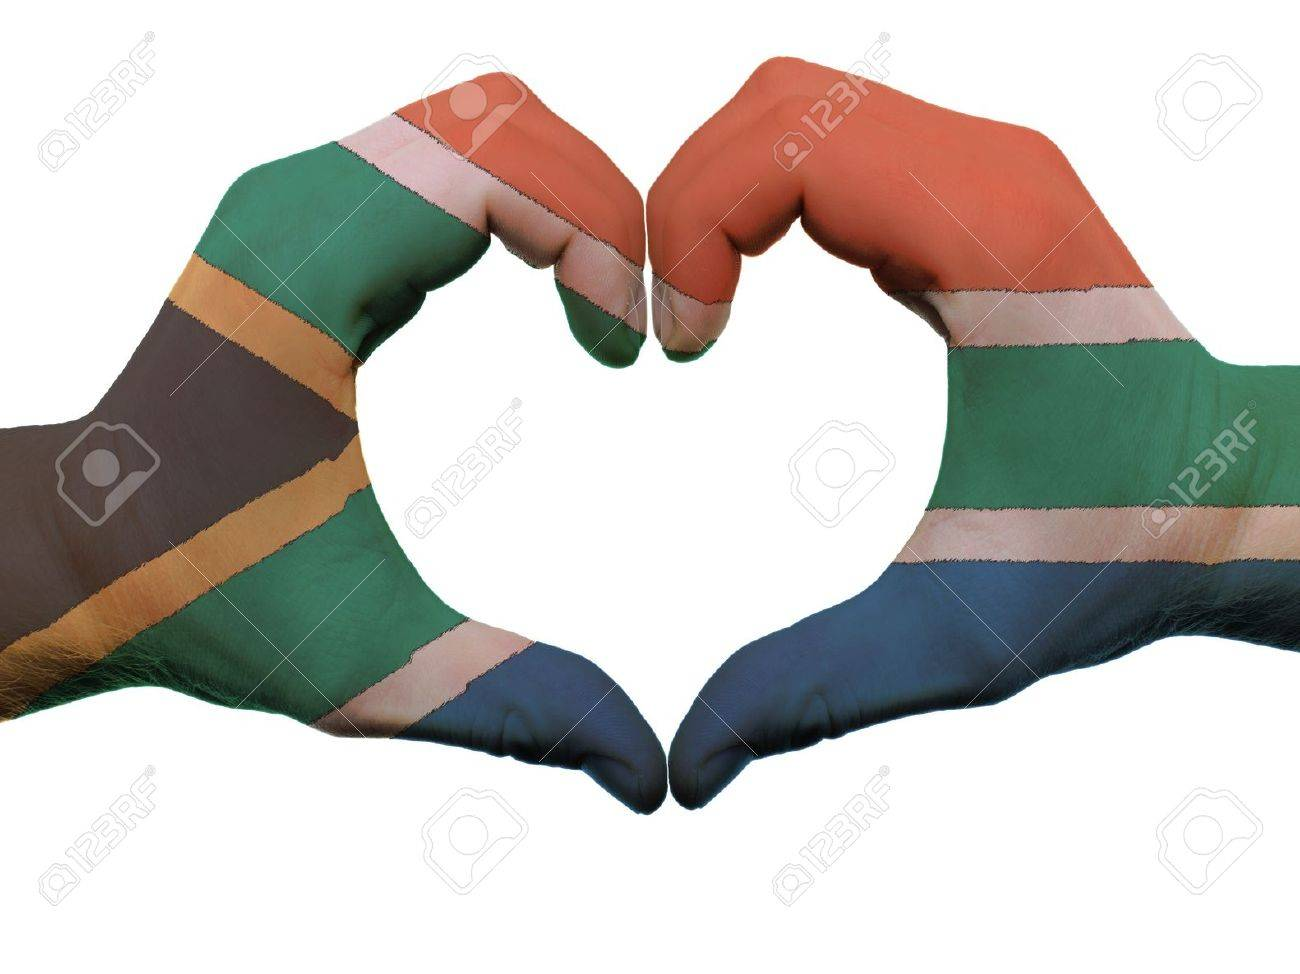 Gesture Made By South Africa Flag Colored Hands Showing Symbol Of